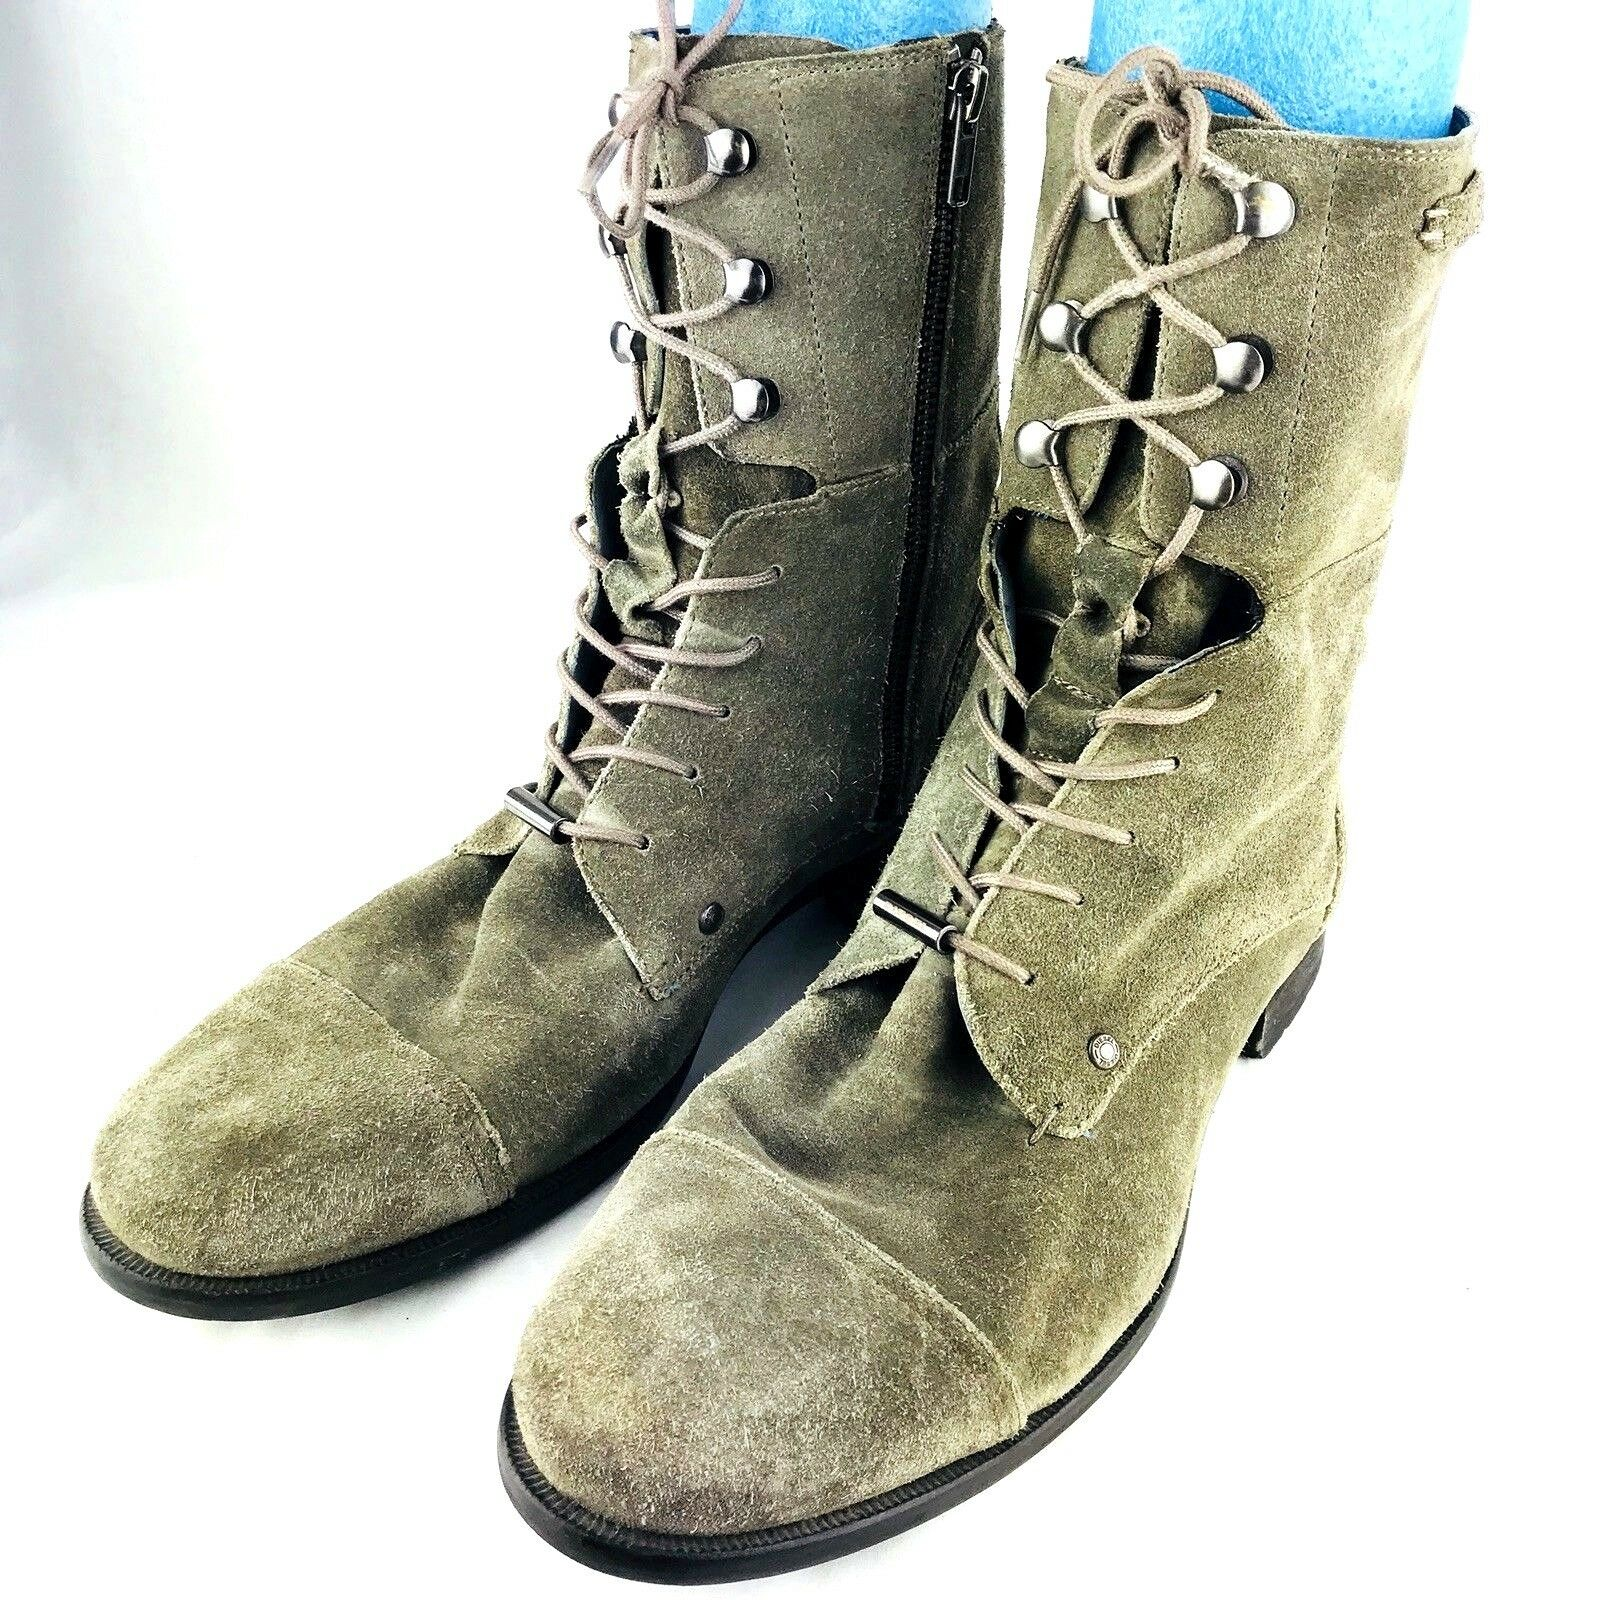 Diesel Uomo's 10.5 Suede Combat Military Hiking Stivali 44 Olive Green Army Tall